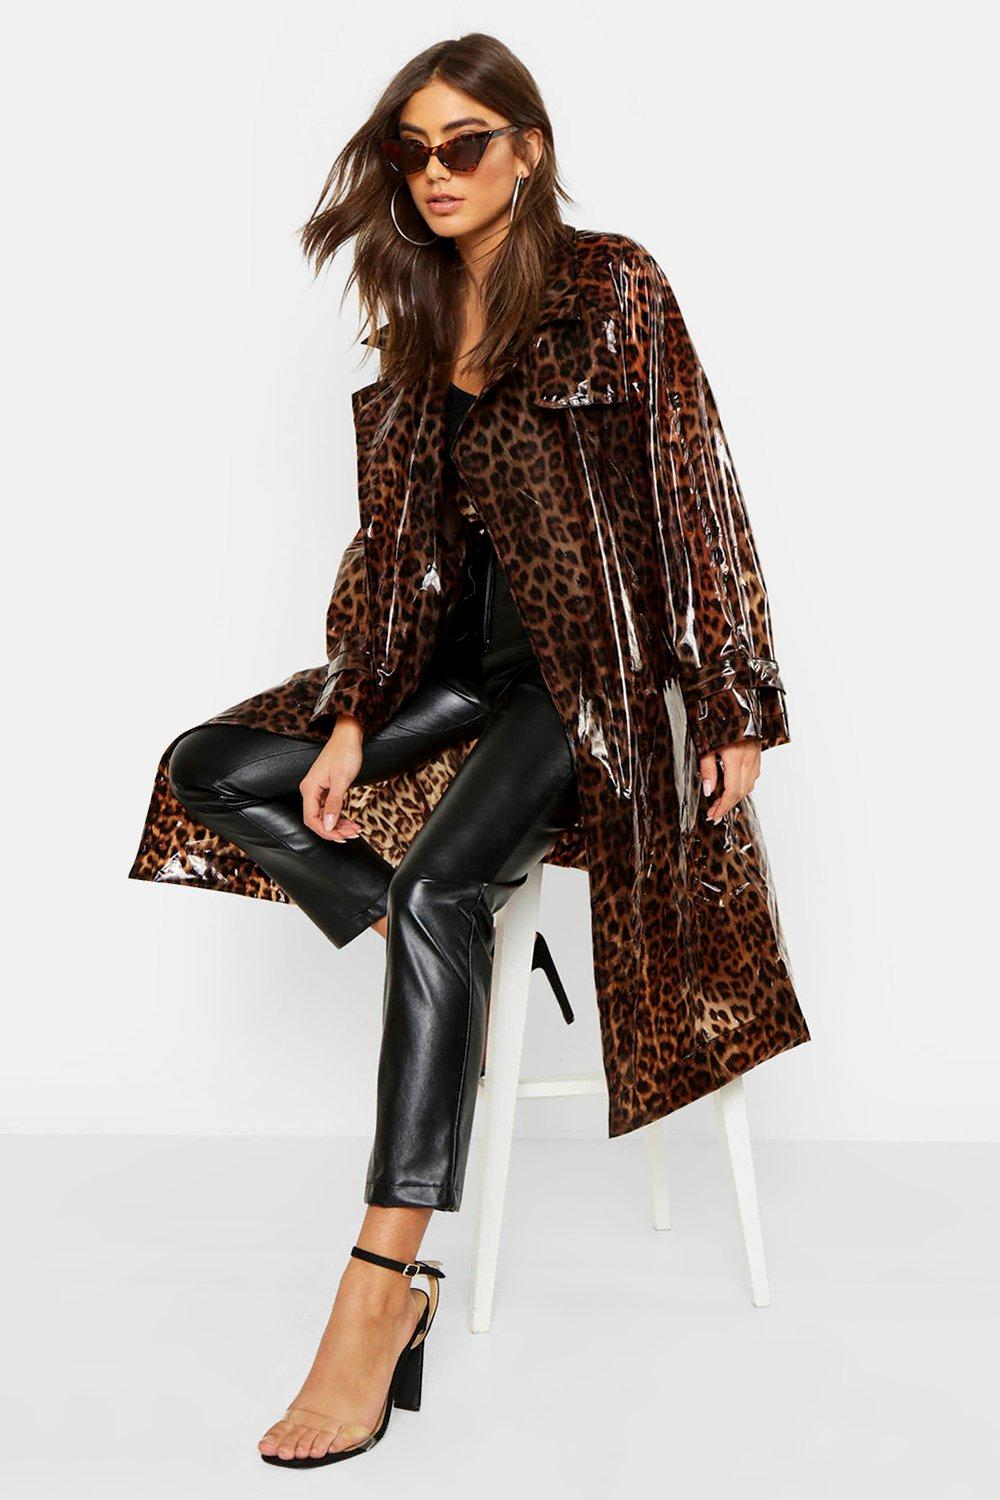 wide selection of colors 100% satisfaction guarantee elegant appearance Leopard Vinyl Trench | Boohoo